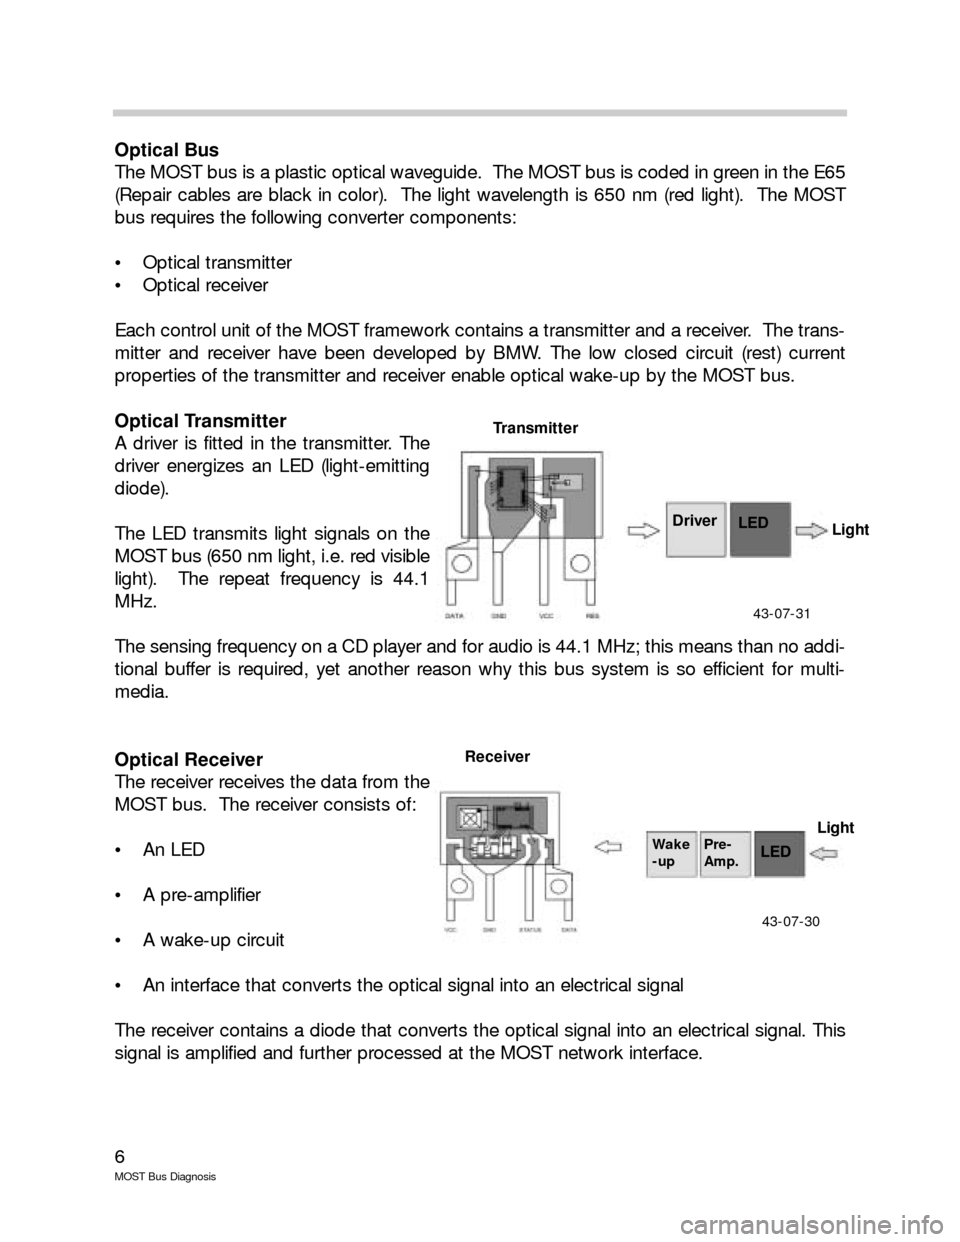 BMW 7 SERIES LONG 2005 E66 MOST Bus Diagnosis Workshop Manual, Page 6